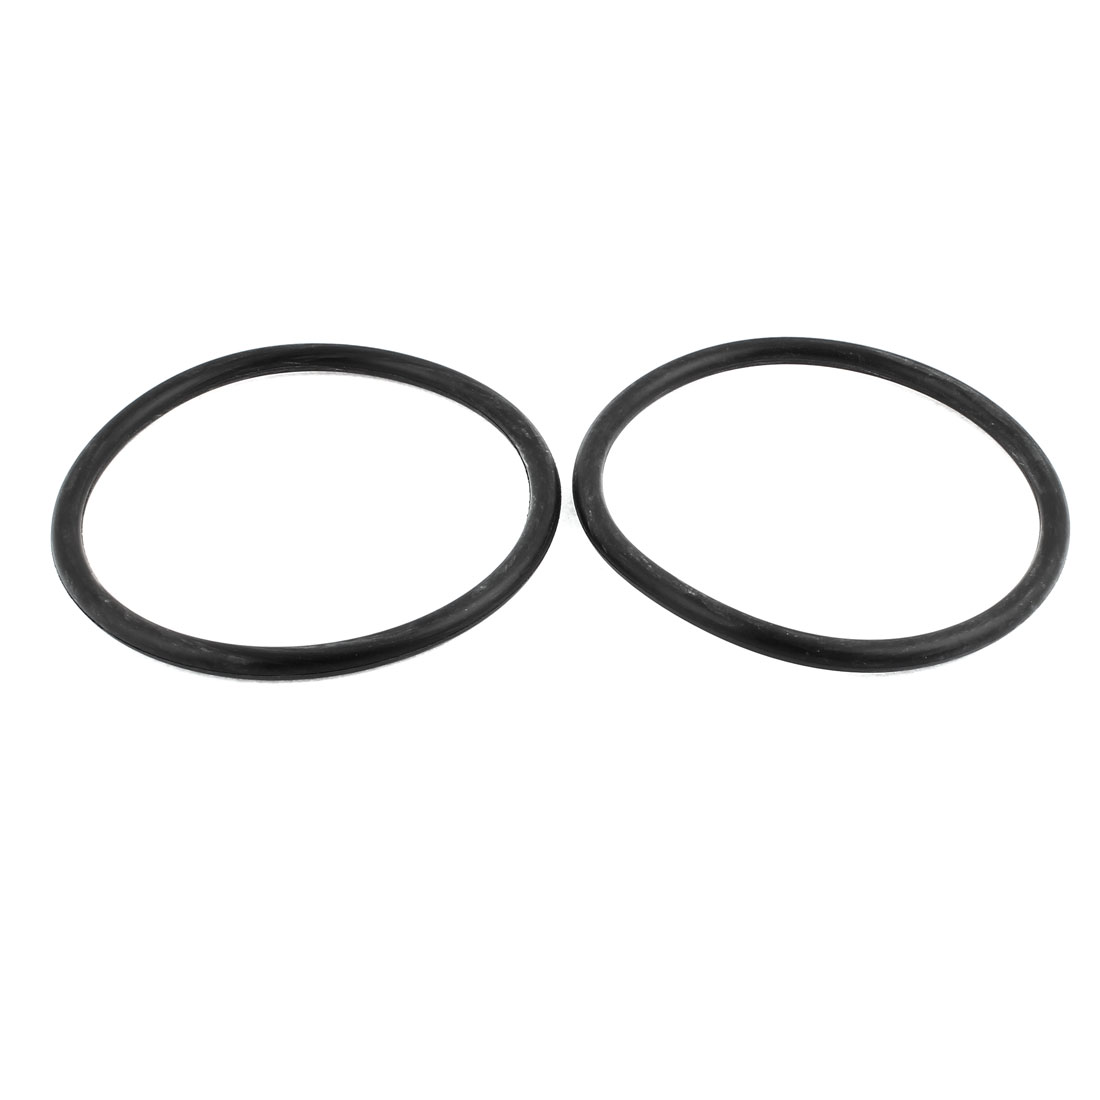 2Pcs Black Universal O-Ring 140mm x 8.6mm BUNA-N Material Oil Seal Washers Grommets